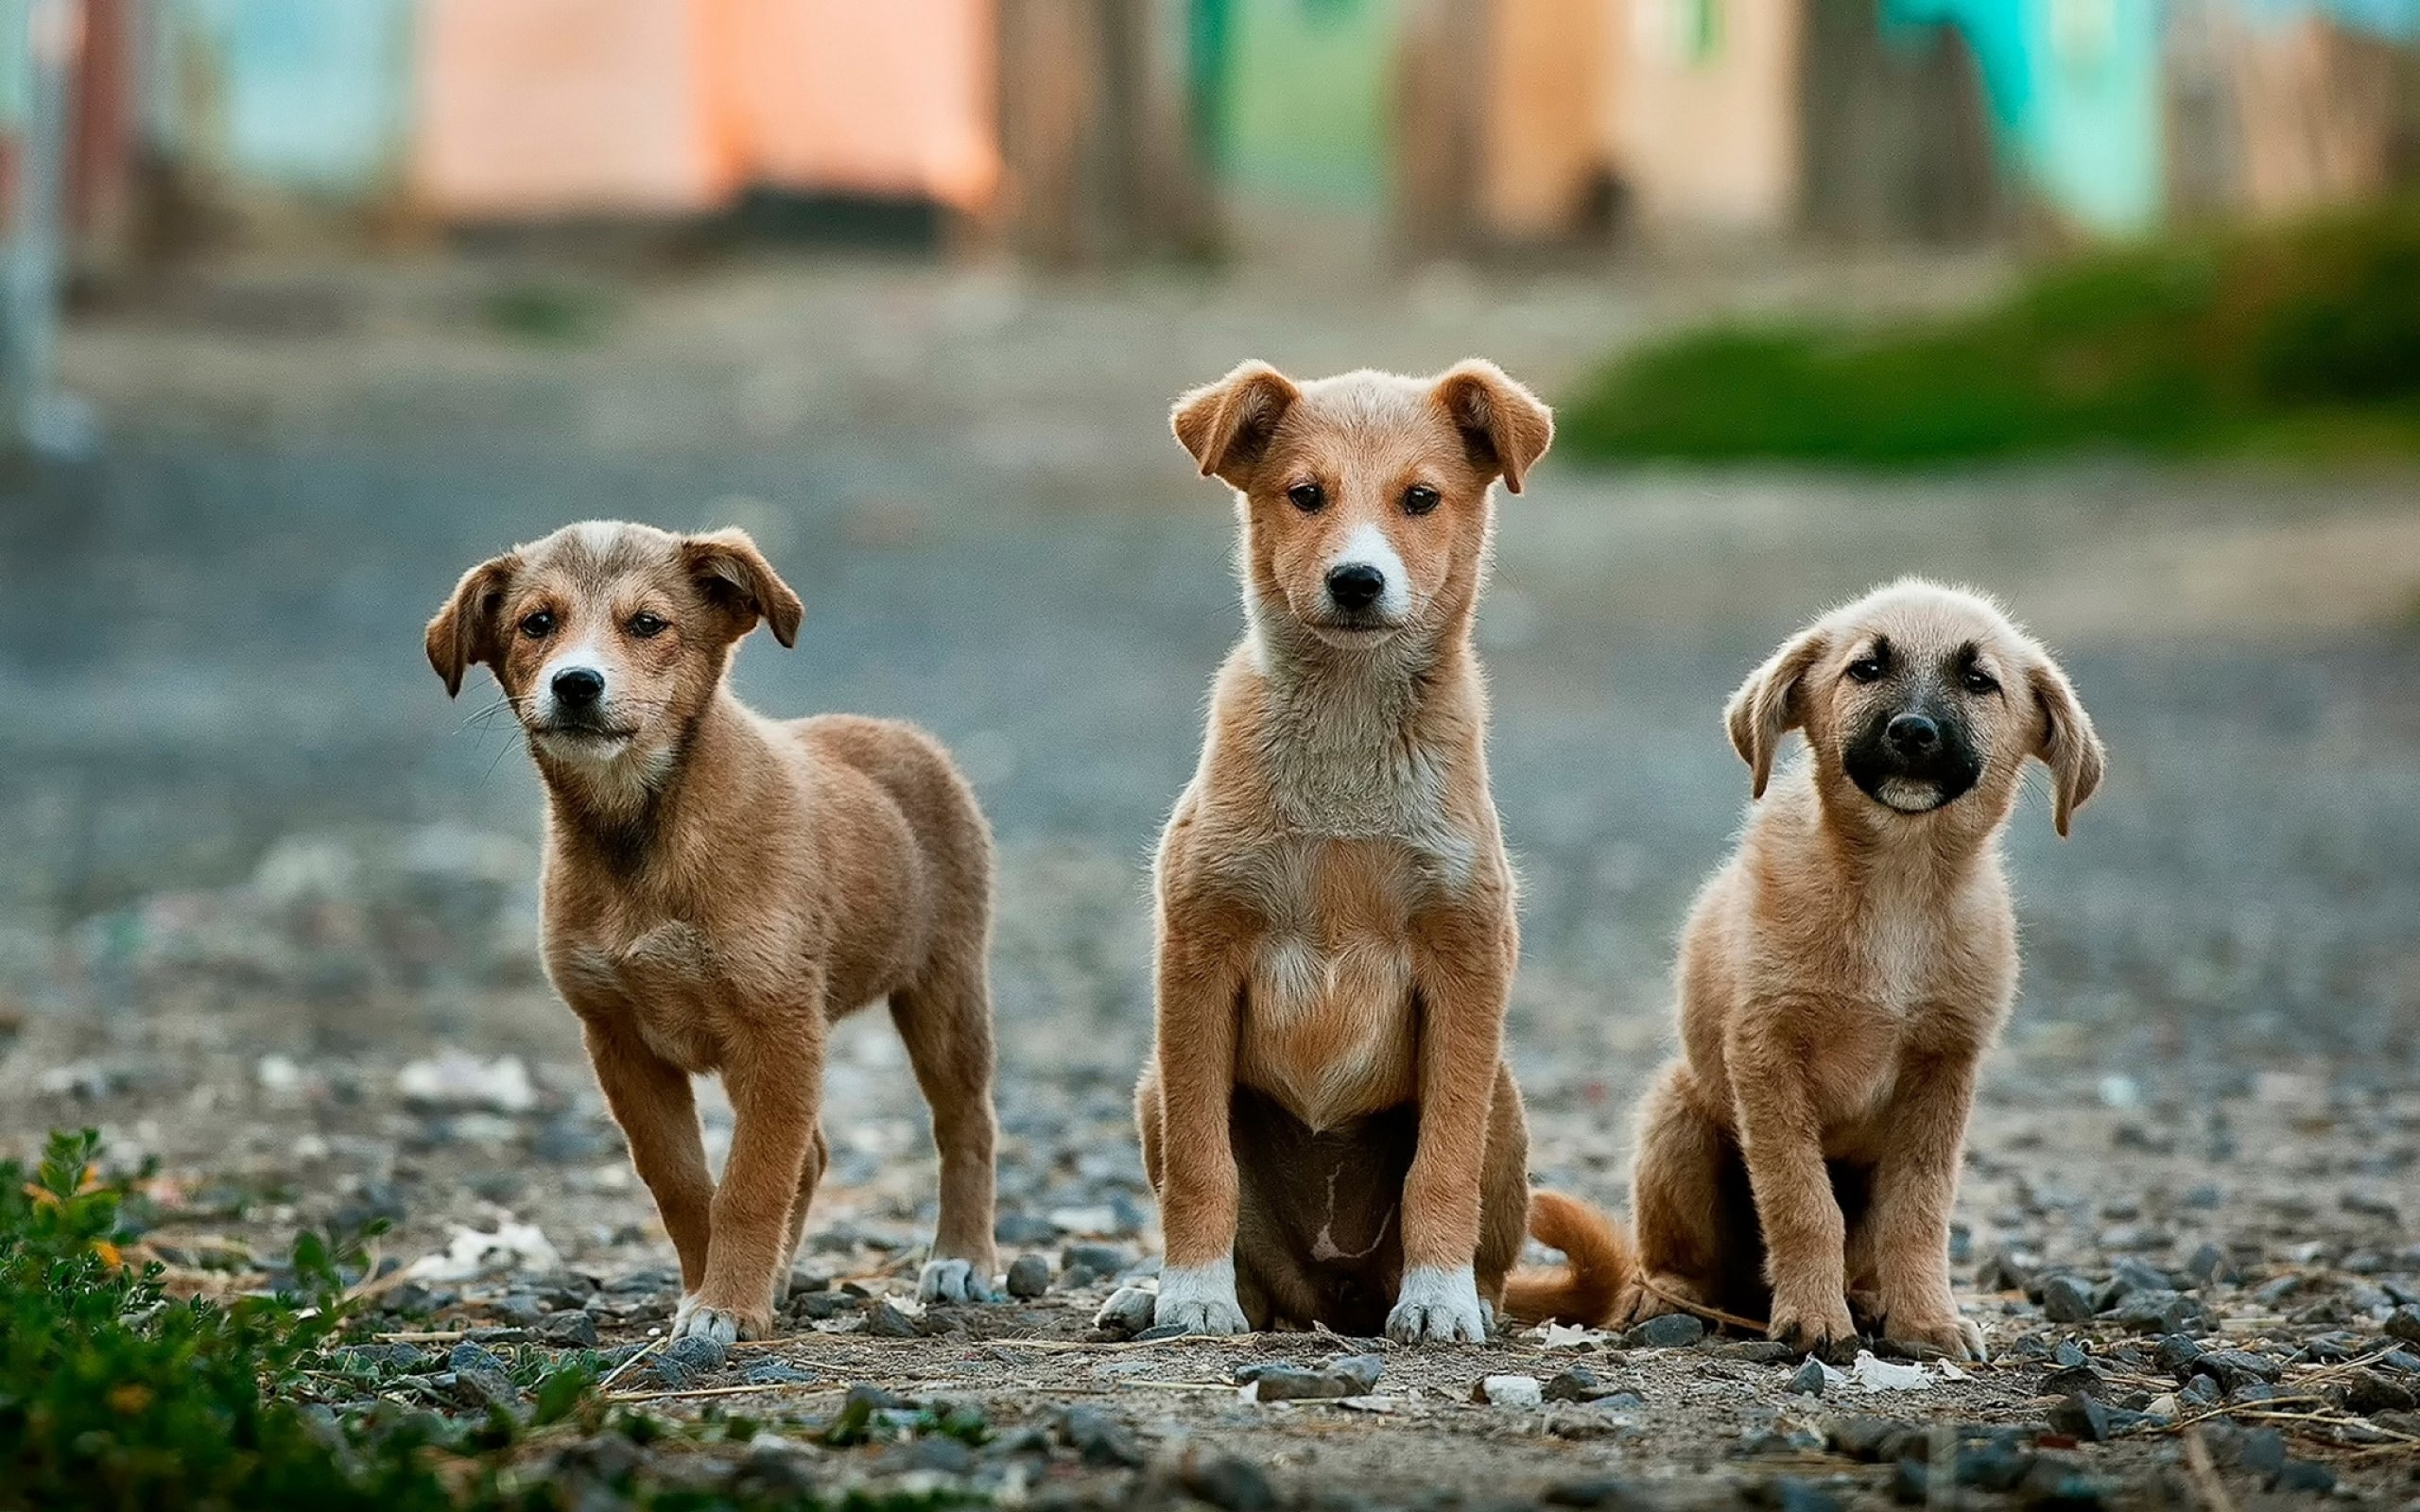 Donate to a charity that helps animals